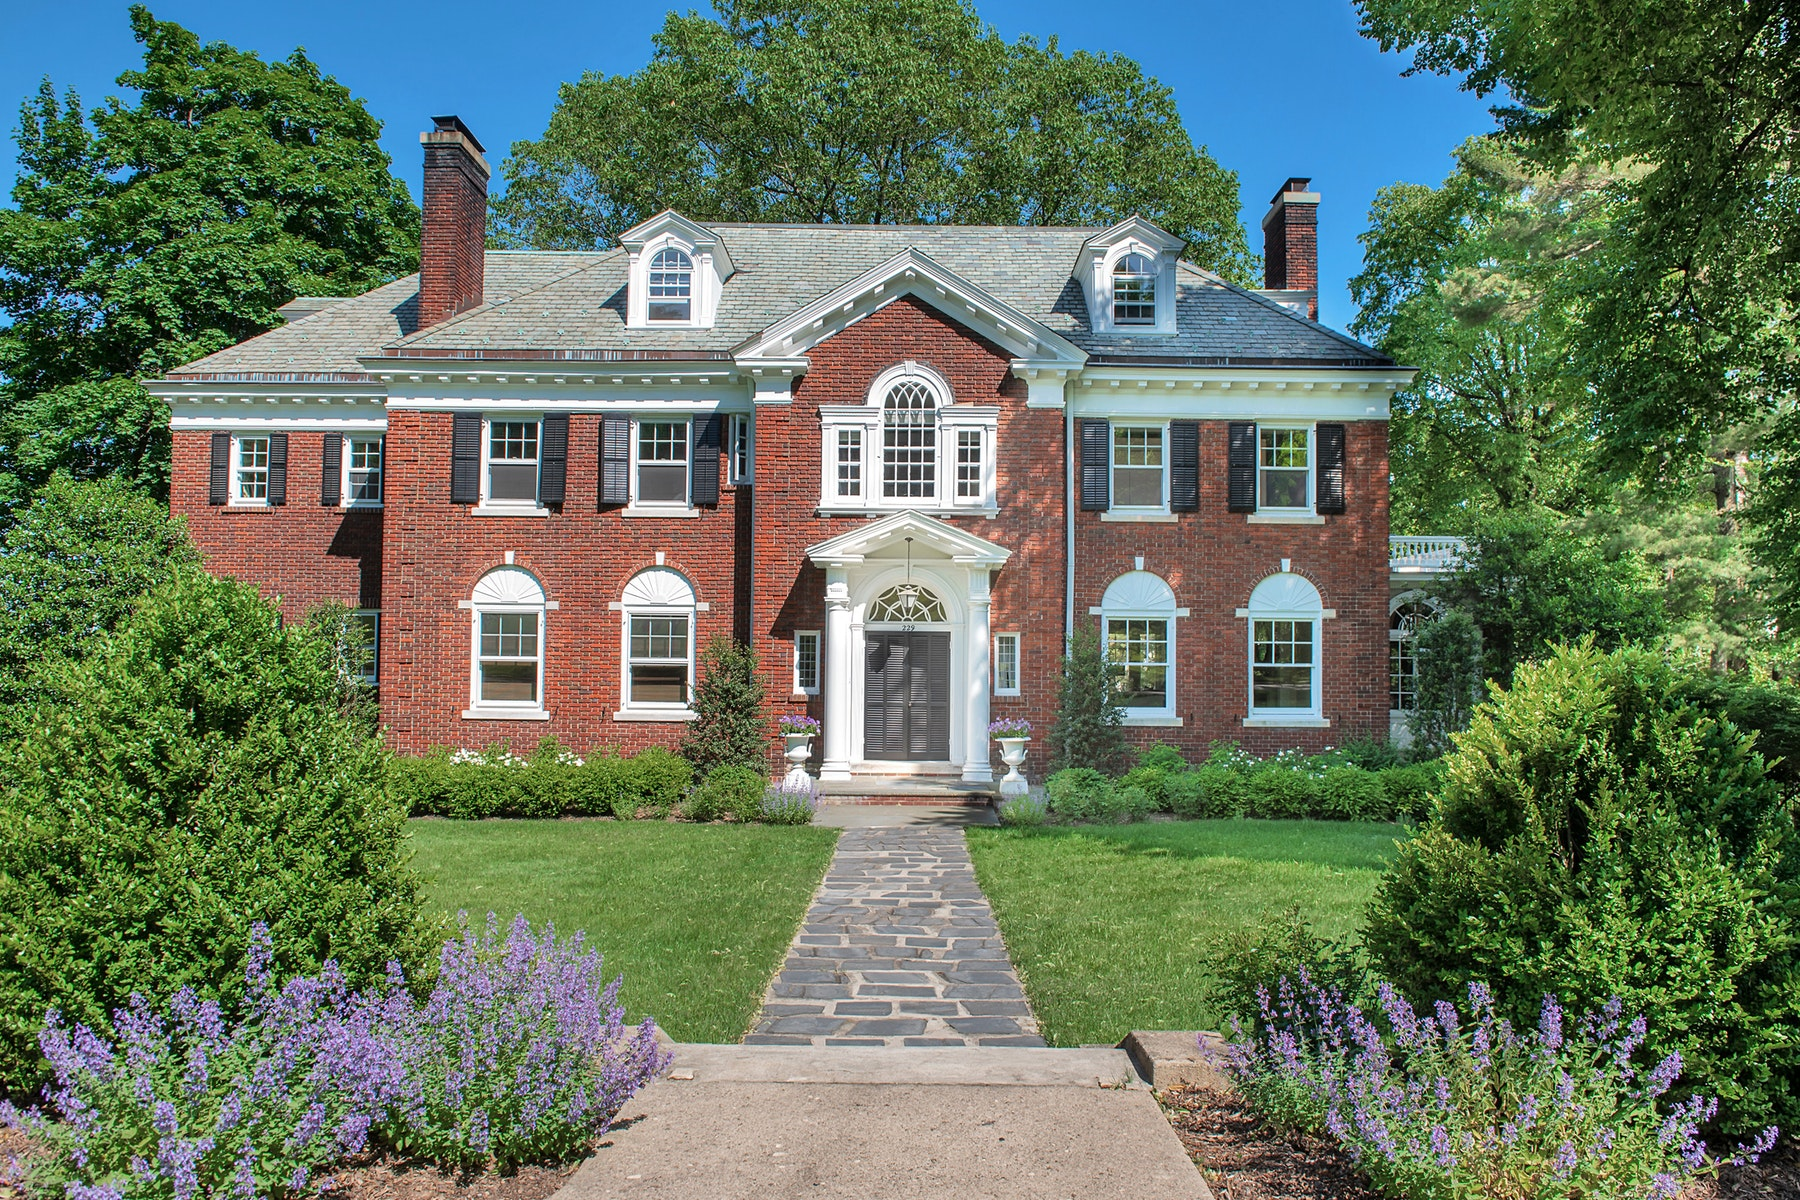 Single Family Homes for Sale at Stately Brick Georgian Colonial 229 Upper Mountain Avenue Montclair, New Jersey 07043 United States